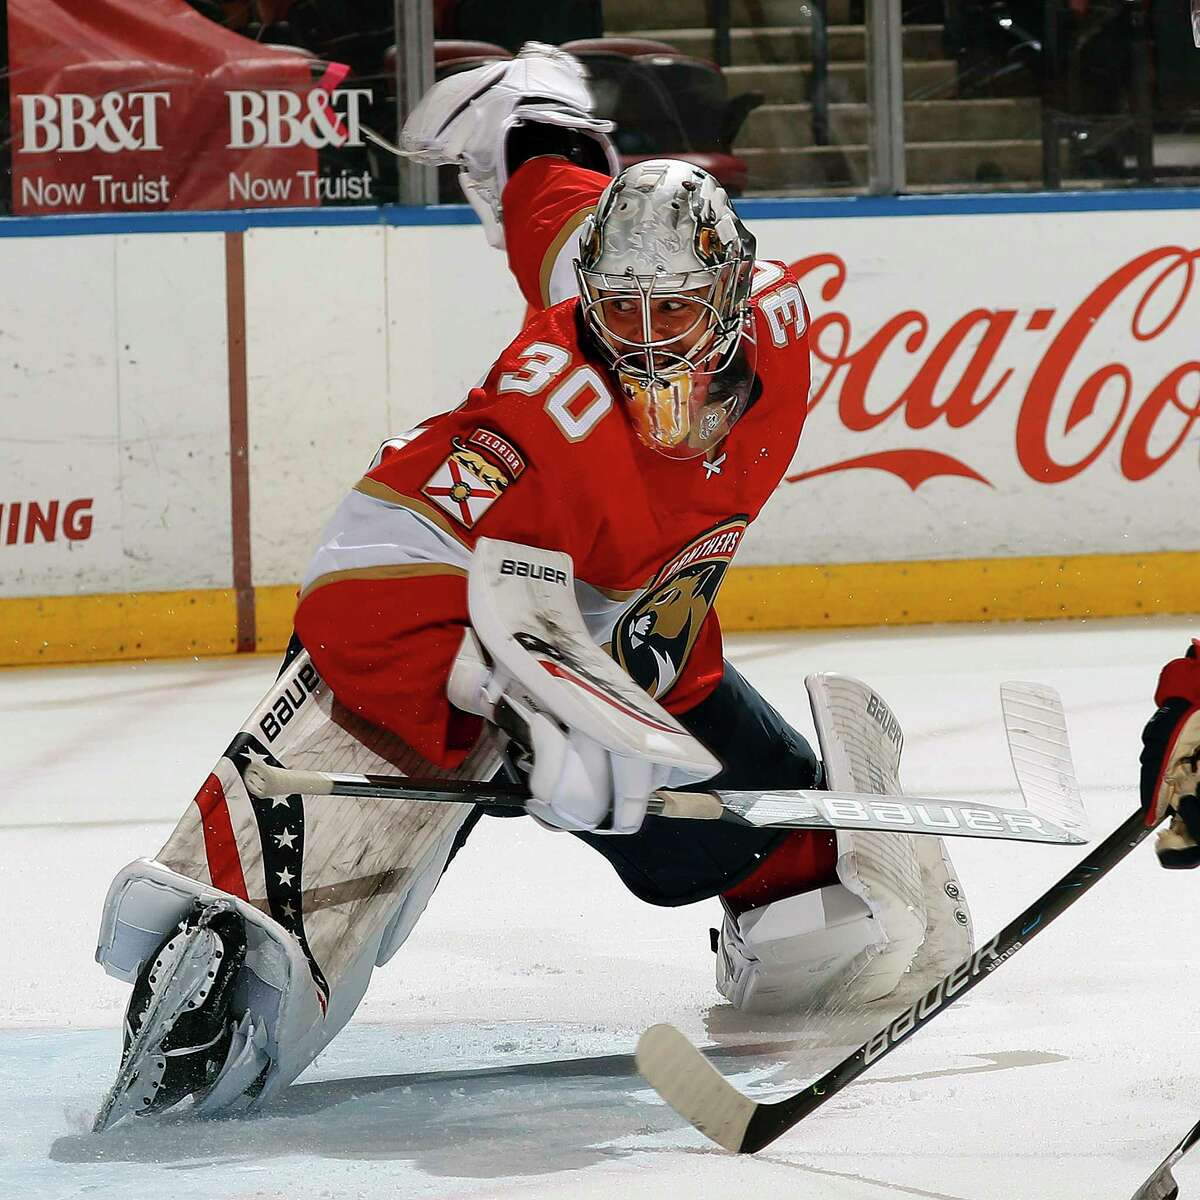 Panthers goalie Spencer Knight, a Darien native, defends the net against the Columbus Blue Jackets at the BB&T Center on Tuesday in Sunrise, Fla. Knight made 33 saves in his NHL debut, a 5-1 win.